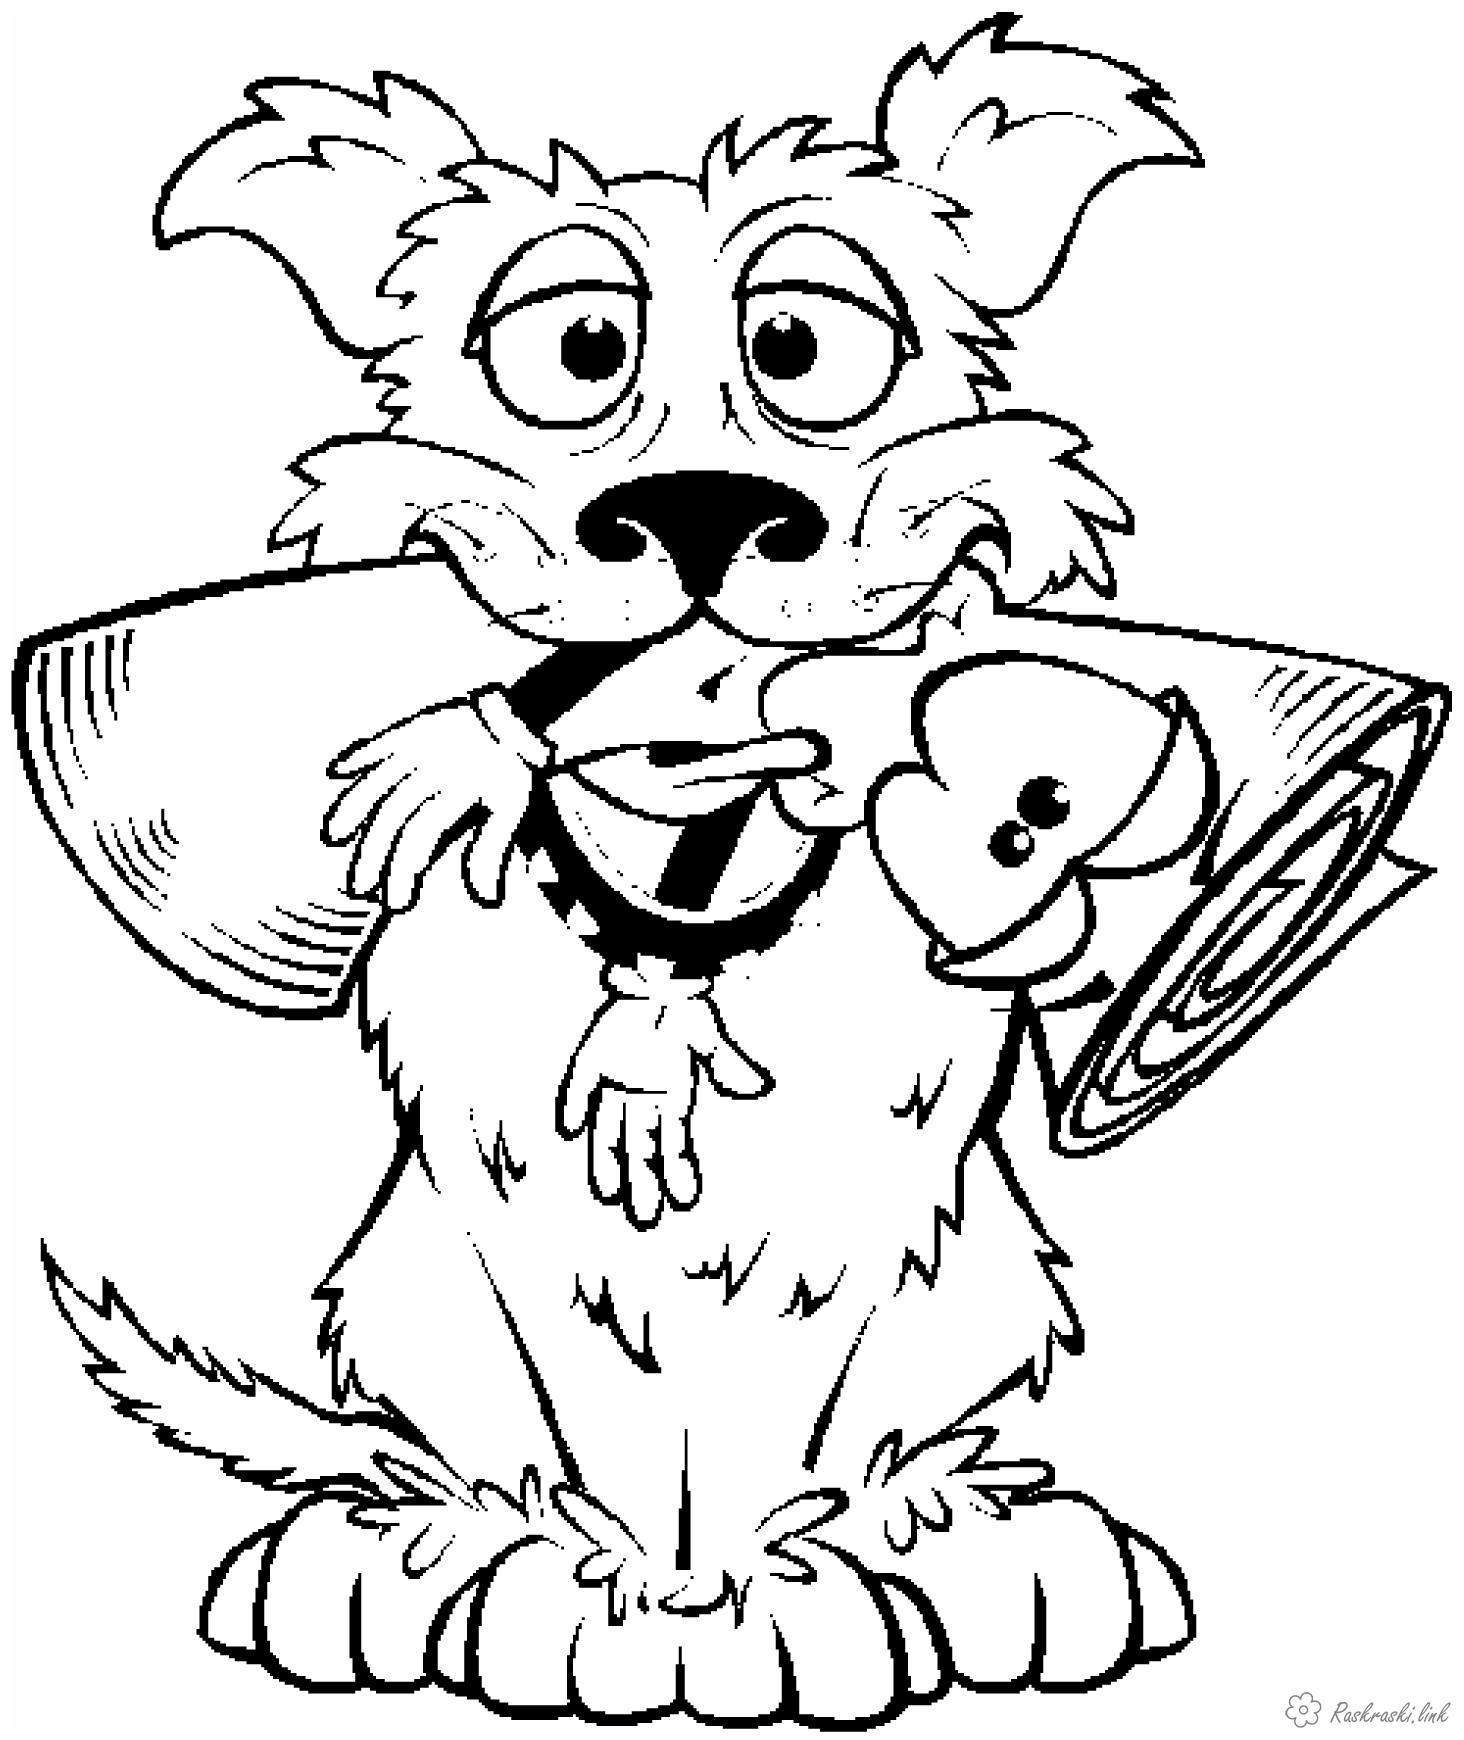 Coloring Dogs russian letter, dog, coloring pages for kids